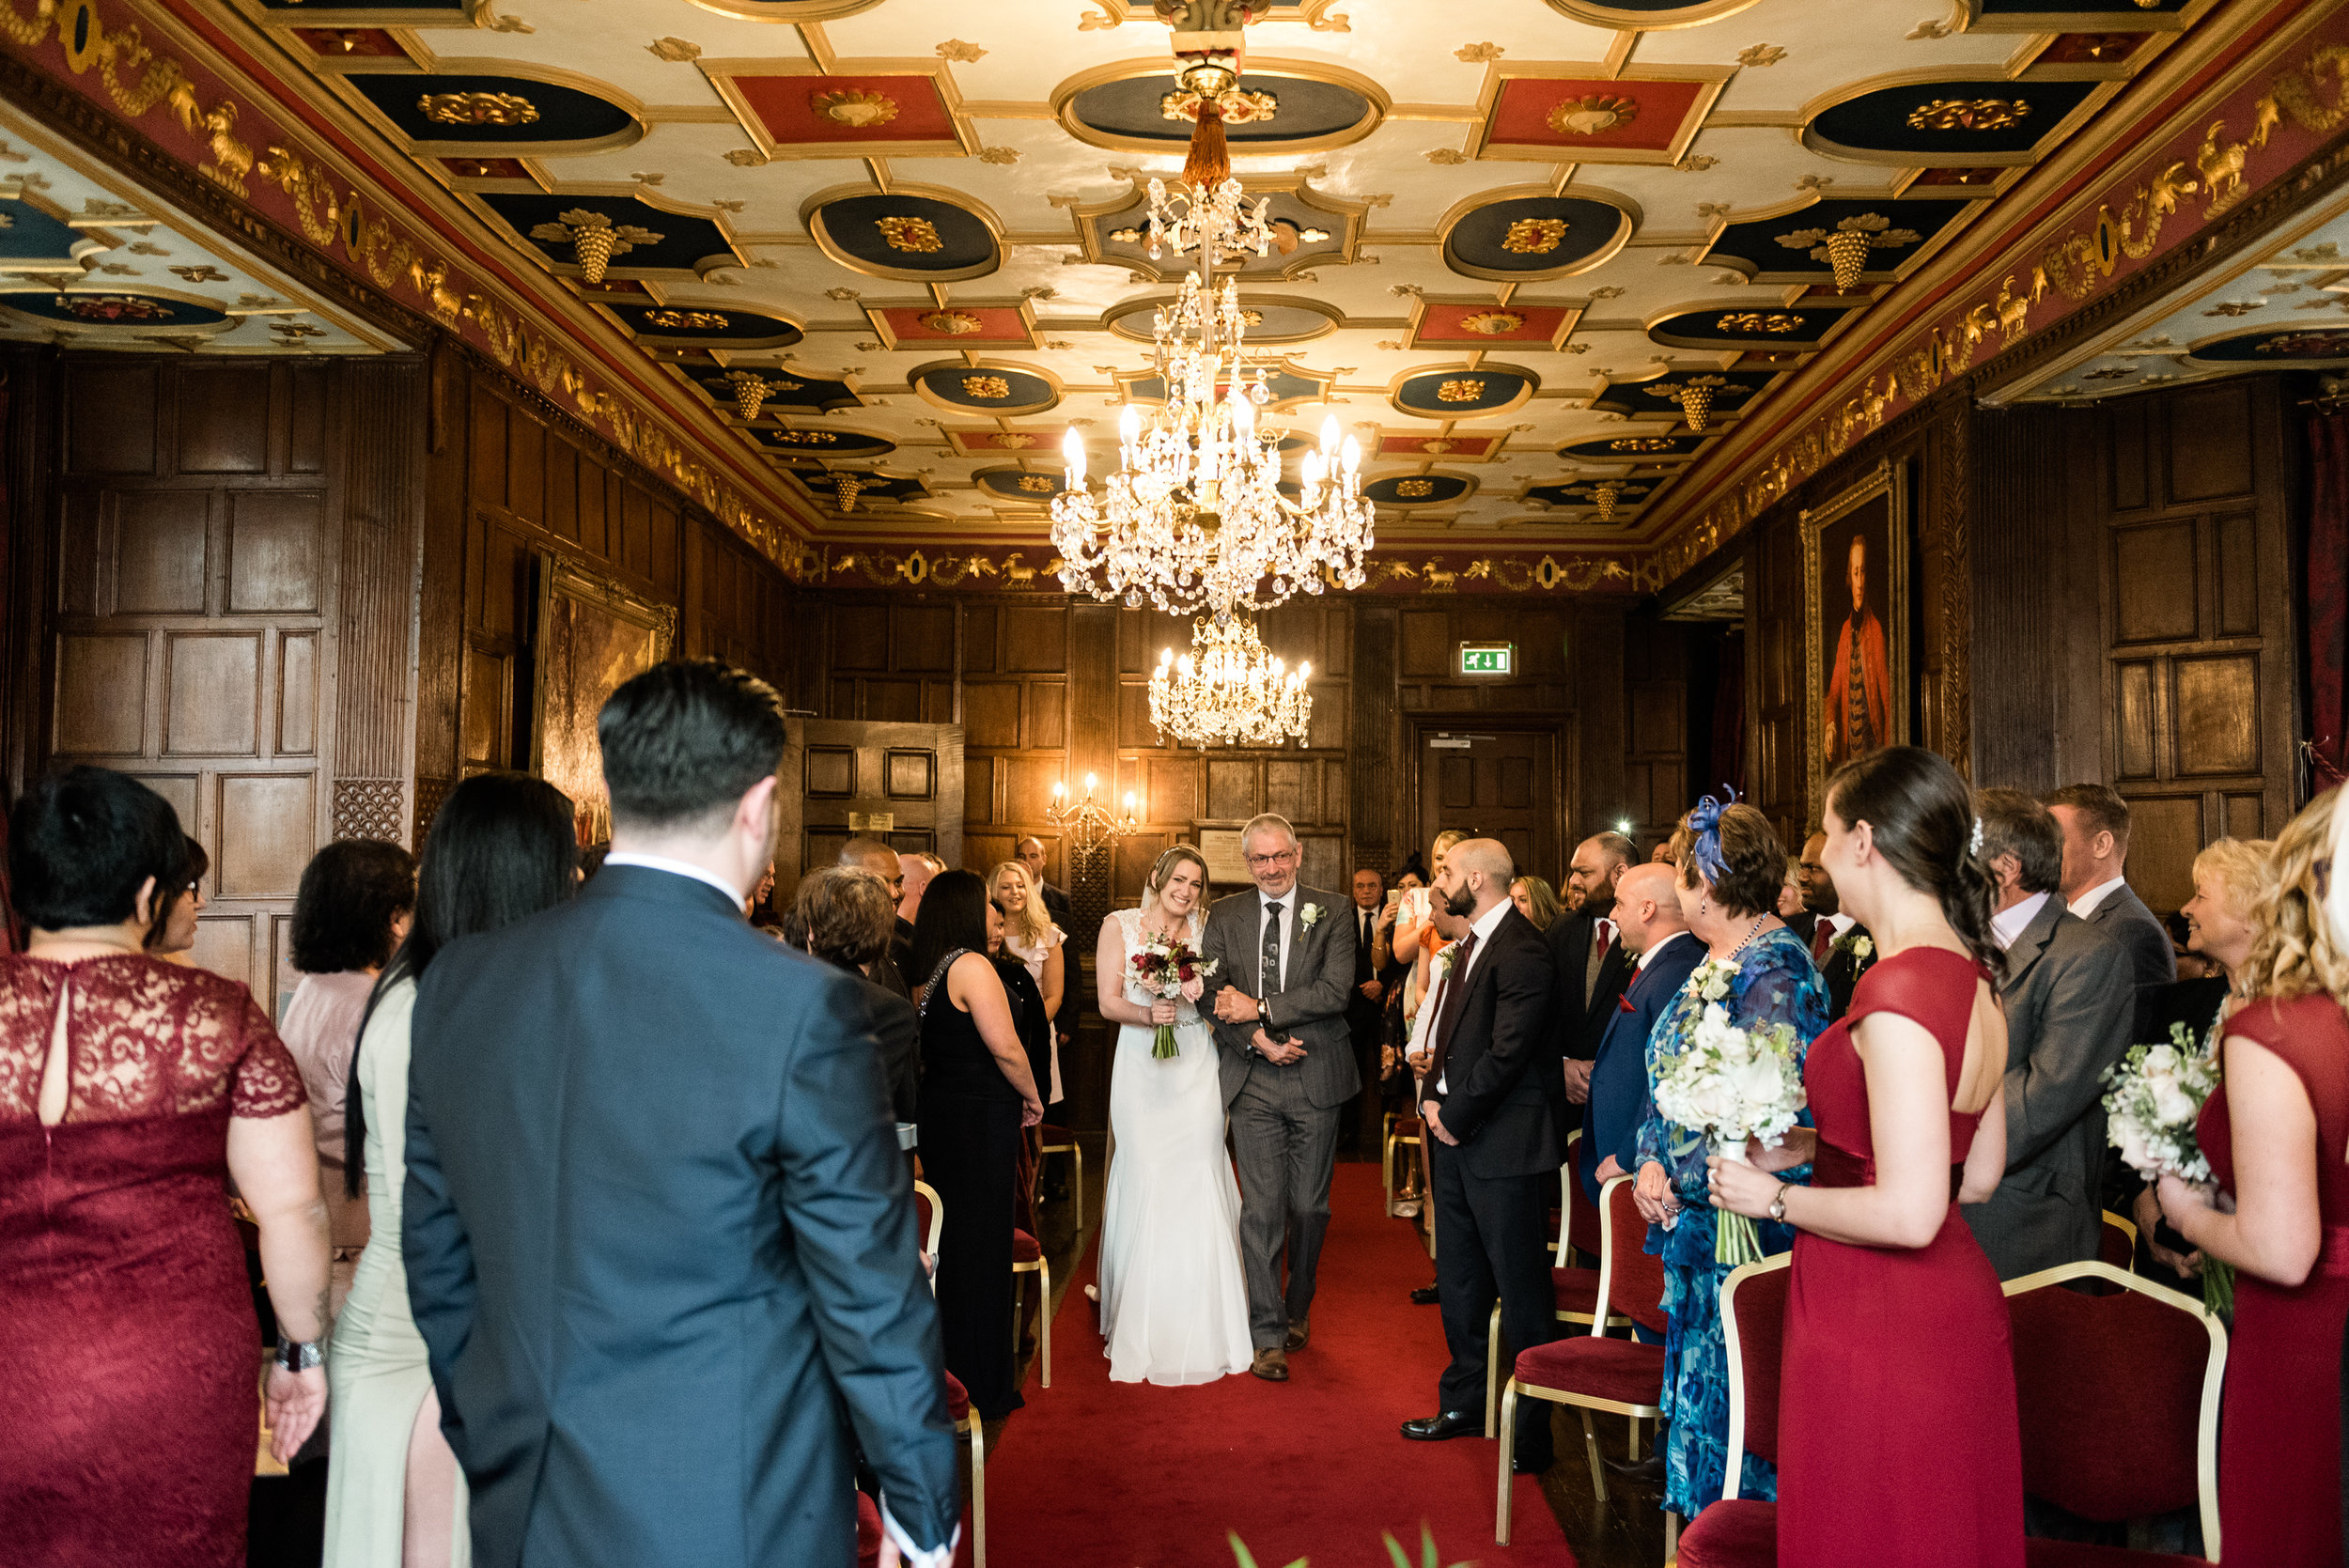 Birmingham Documentary Wedding Photography at New Hall, Sutton Coldfield Turkish Red Candid Reportage - Jenny Harper-23.jpg